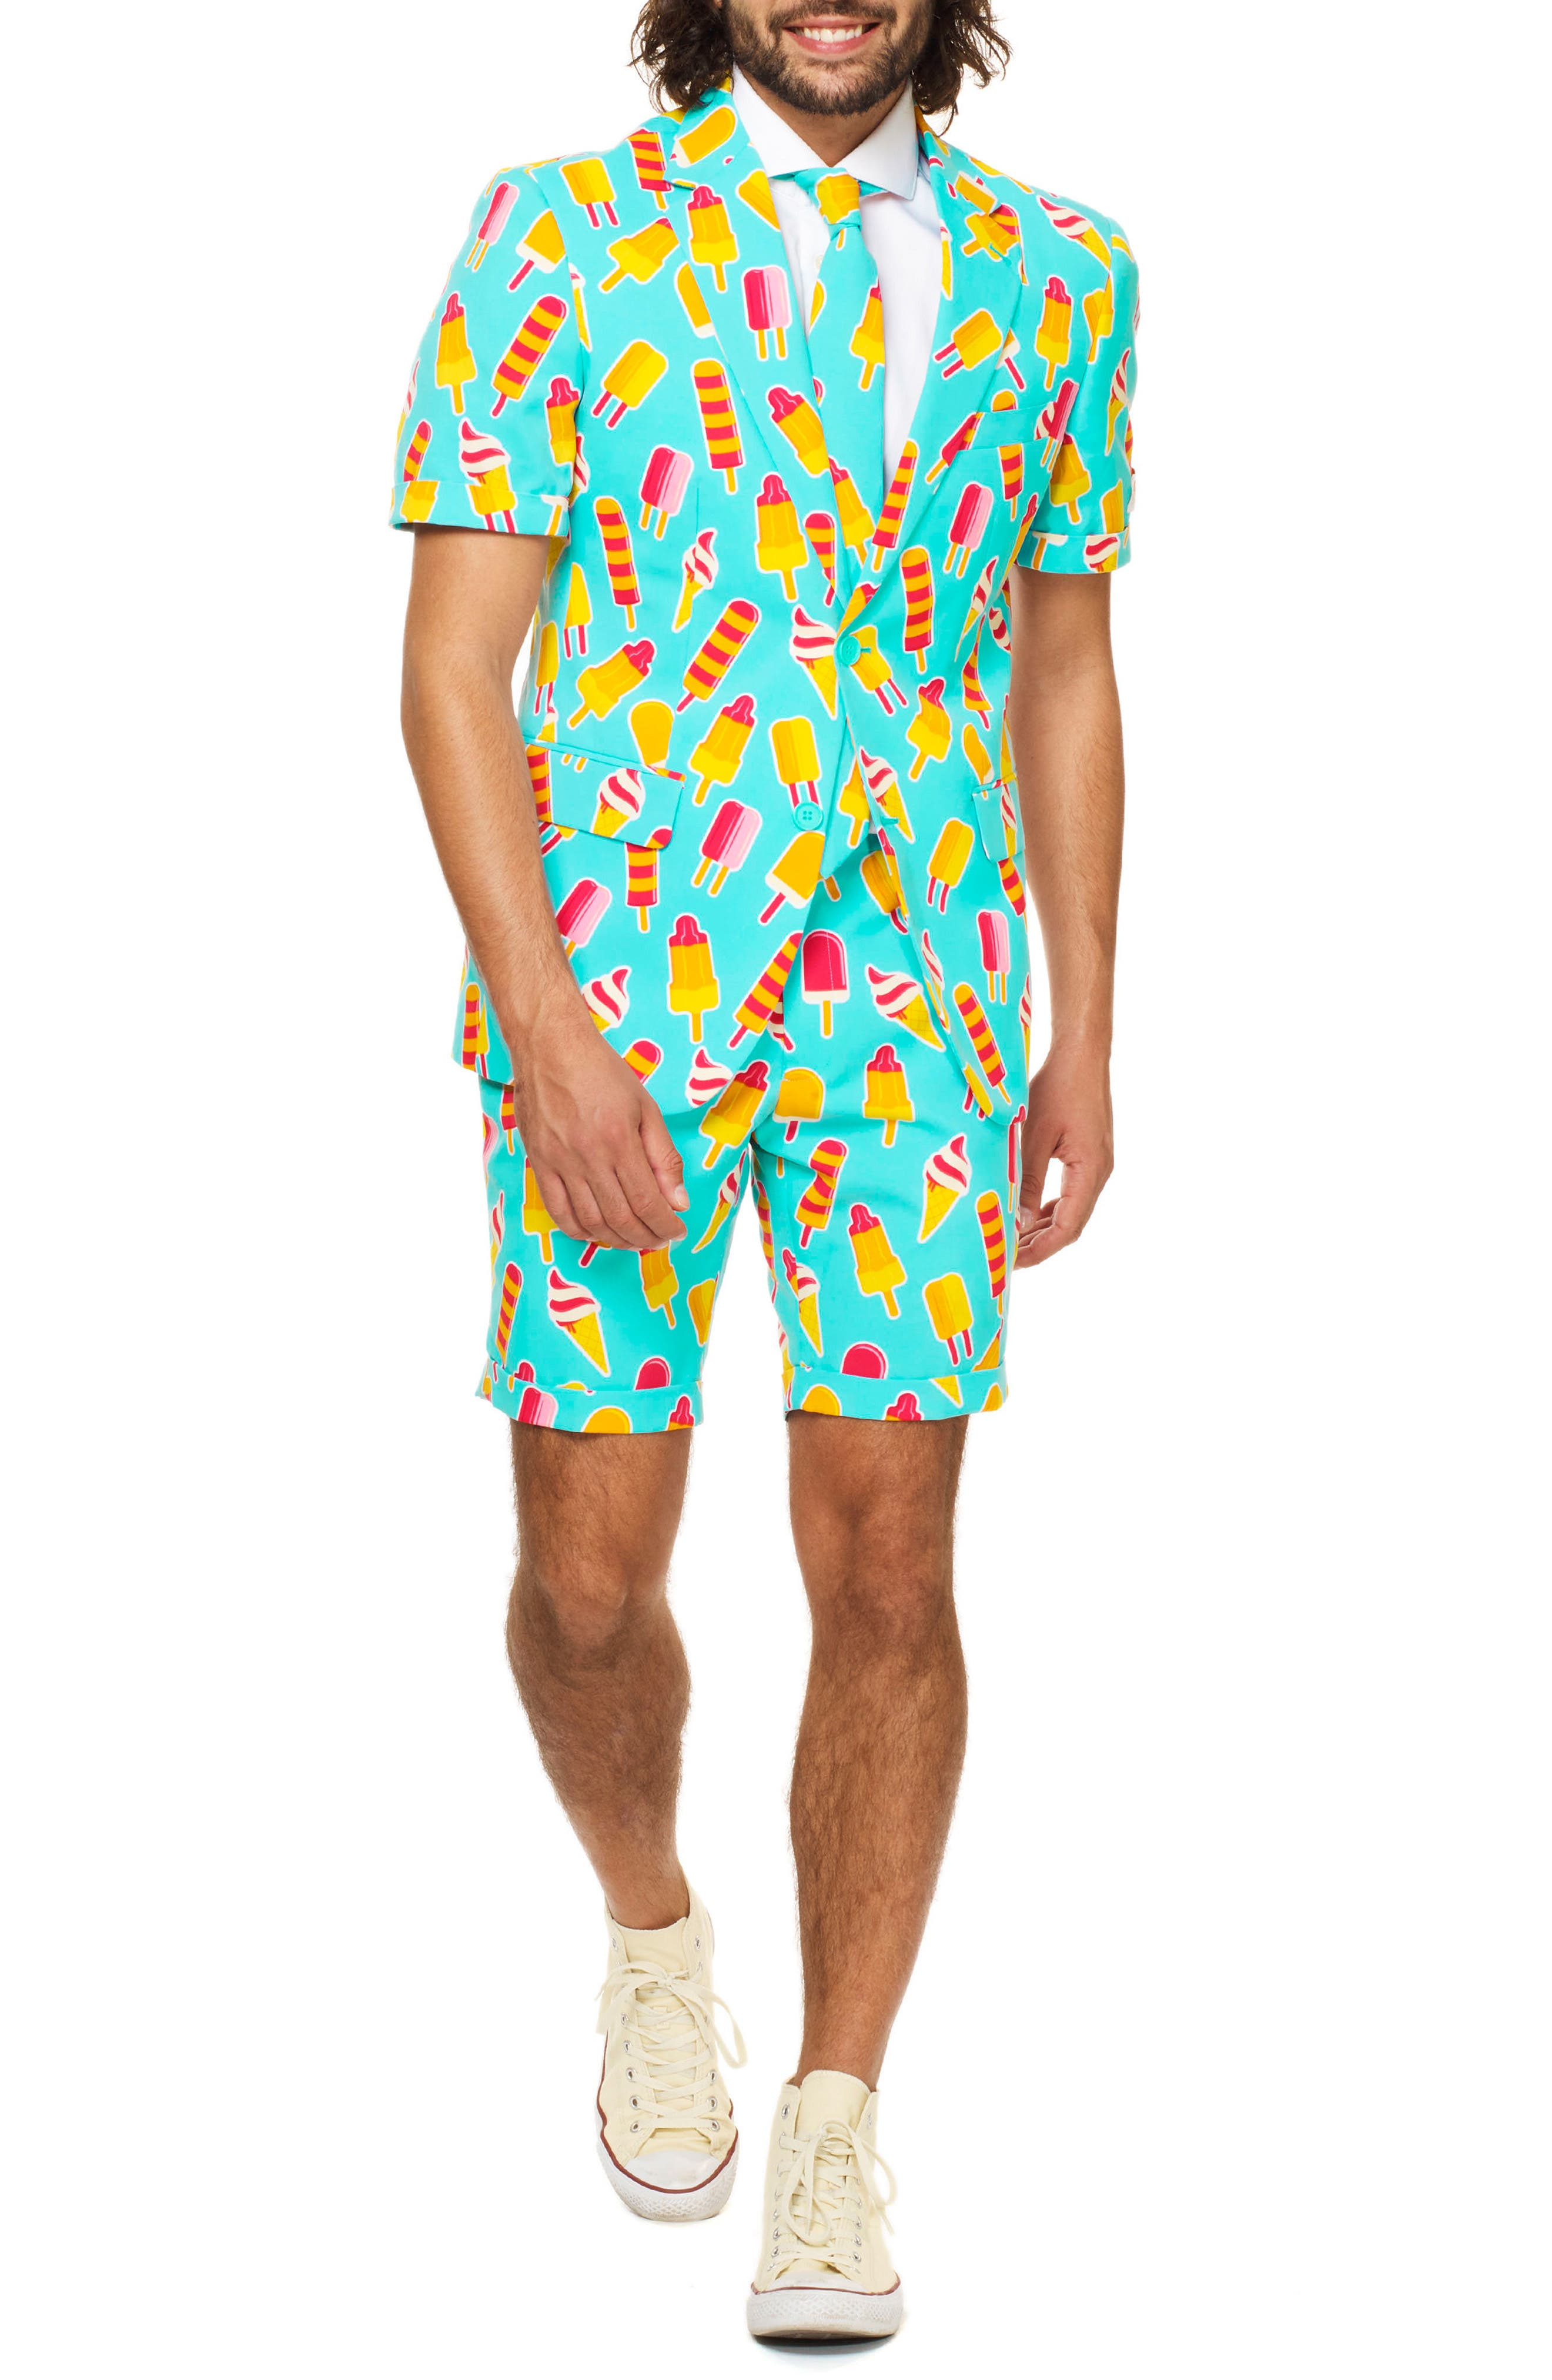 OppoSuits Summer Cool Cones Trim Fit Two-Piece Short Suit with Tie